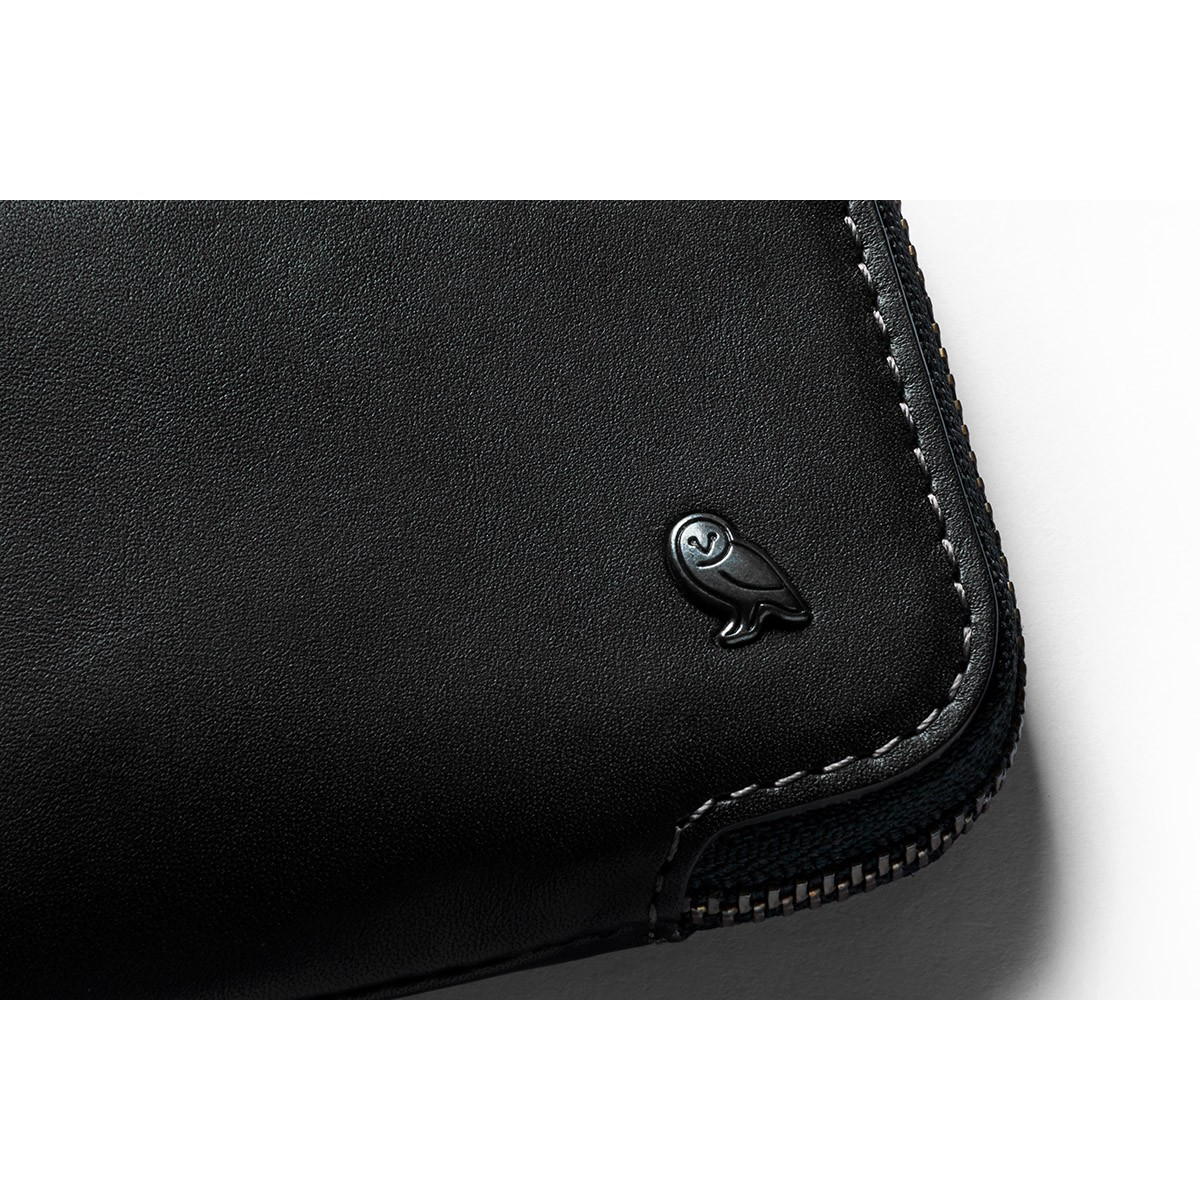 5ca5c9b00a72b ... Bellroy Card Pocket - Plånbok Black ...